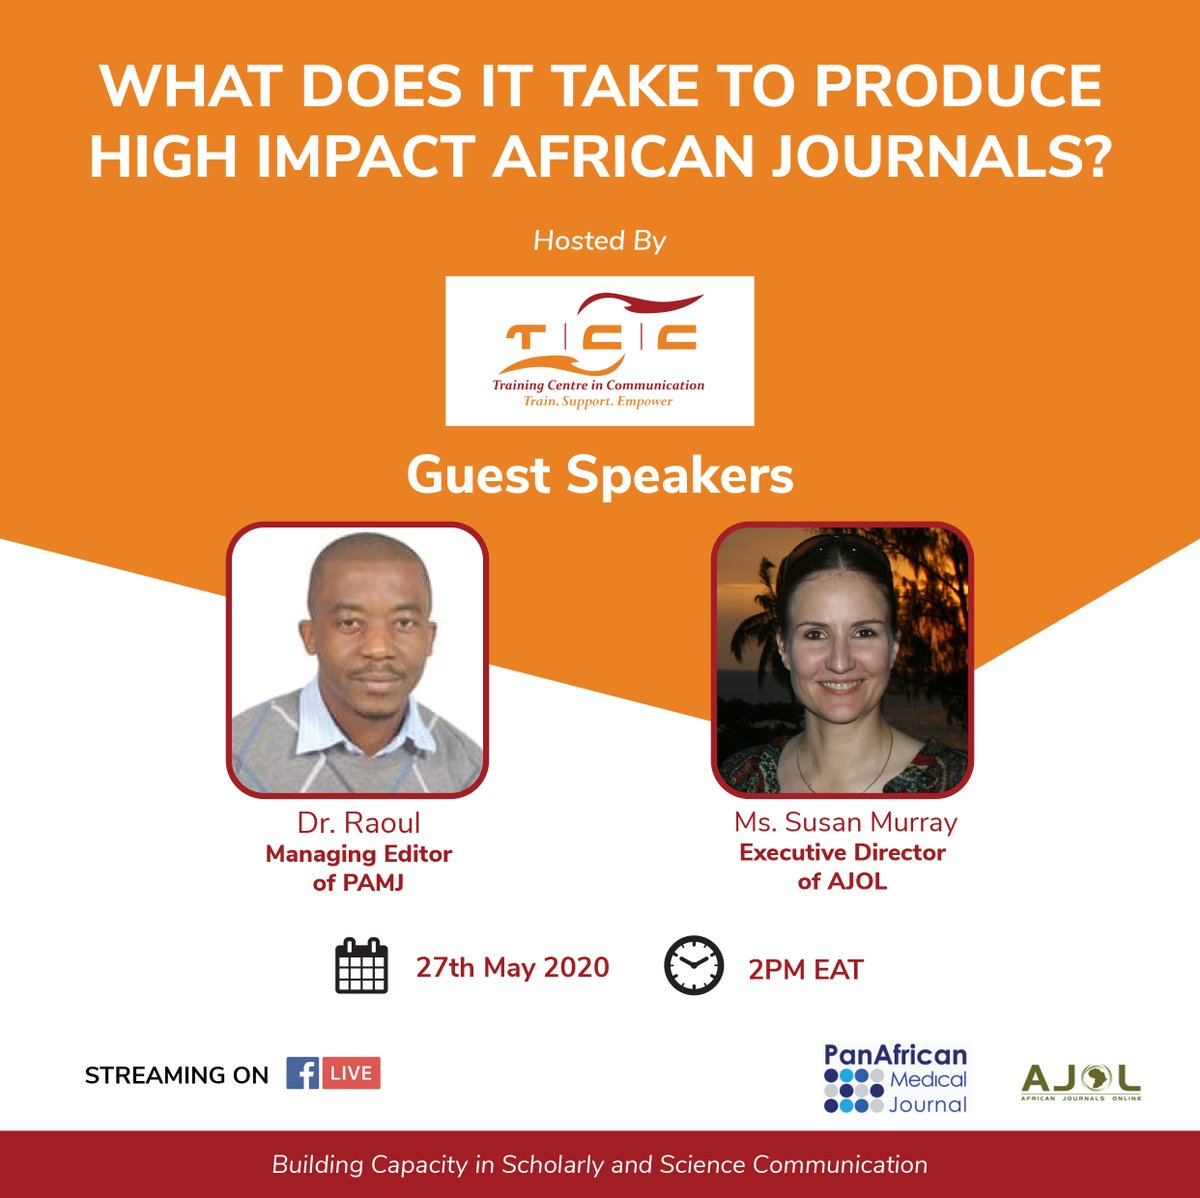 ONGOING: @AJOLinfo  & @tccafrica  #Webinar : What Does it Take To Produce High Impact African Journals (27 May 2PM,Nairobi) #LIVESTREAMING  via  https://t.co/cM1uHquPAT https://t.co/Kzkbd7zPQ3